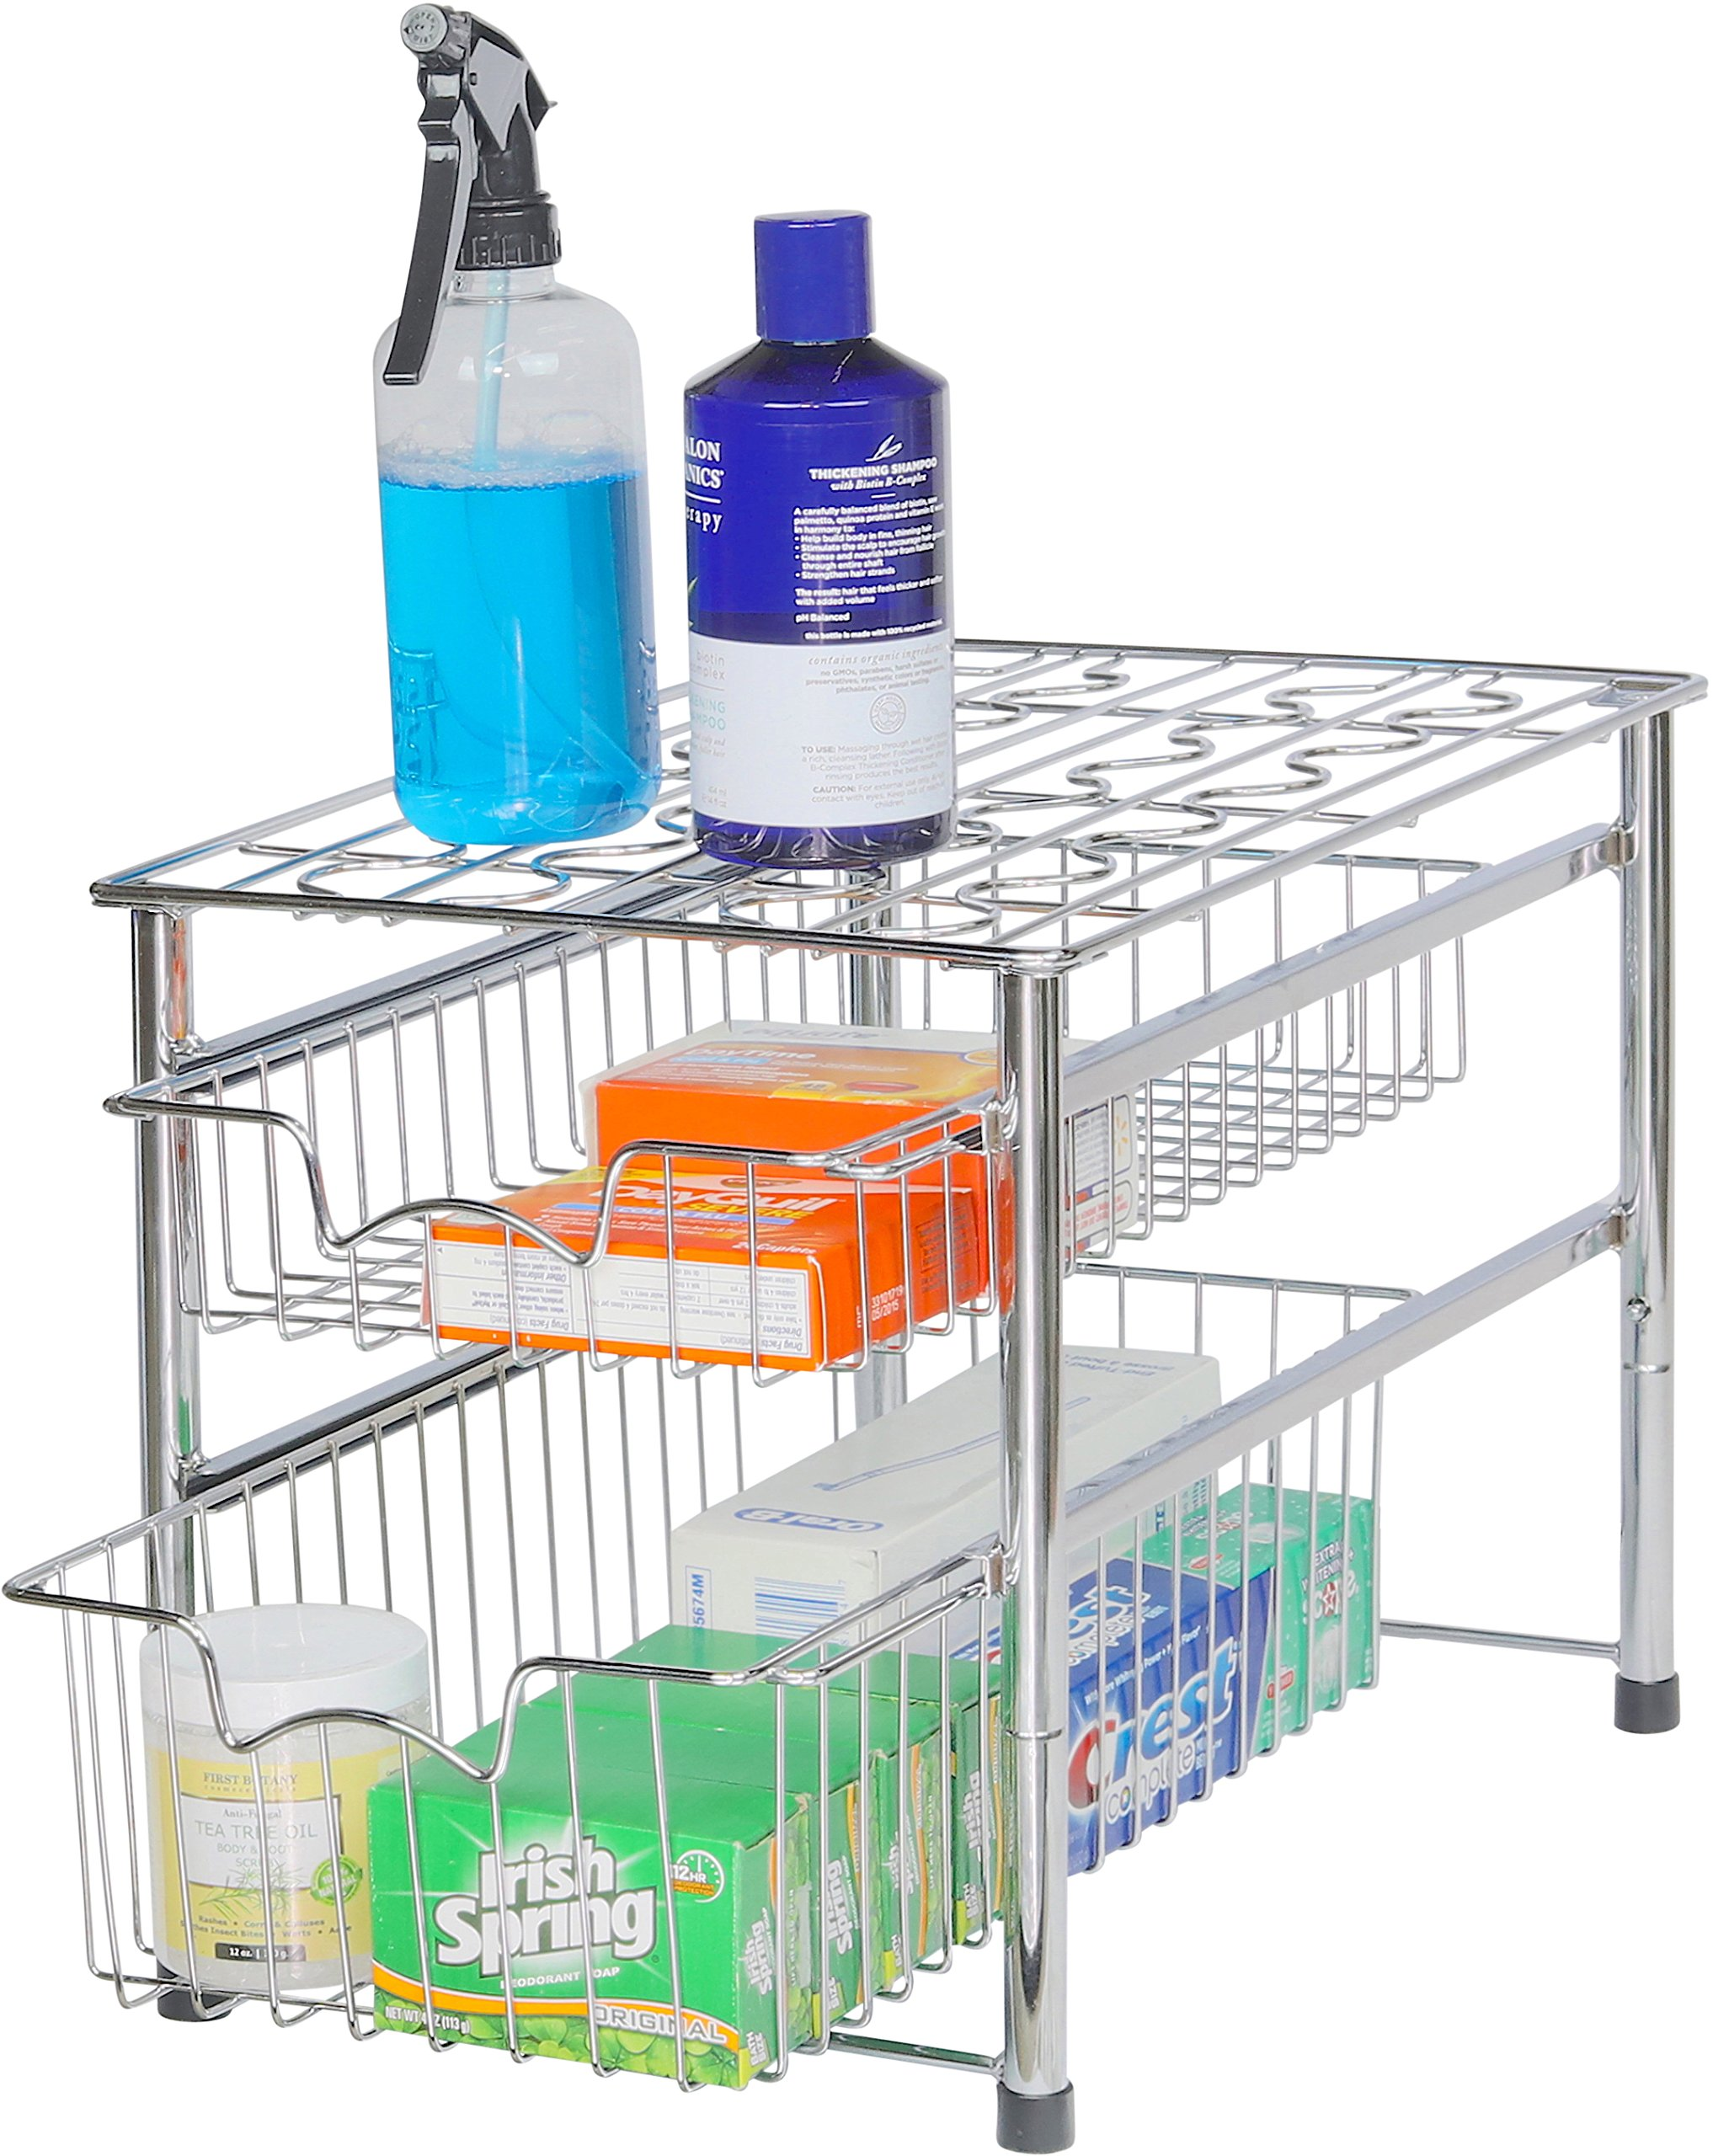 Simple Houseware Stackable 2 Tier Sliding Basket Organizer Drawer, Chrome by Simple Houseware (Image #2)